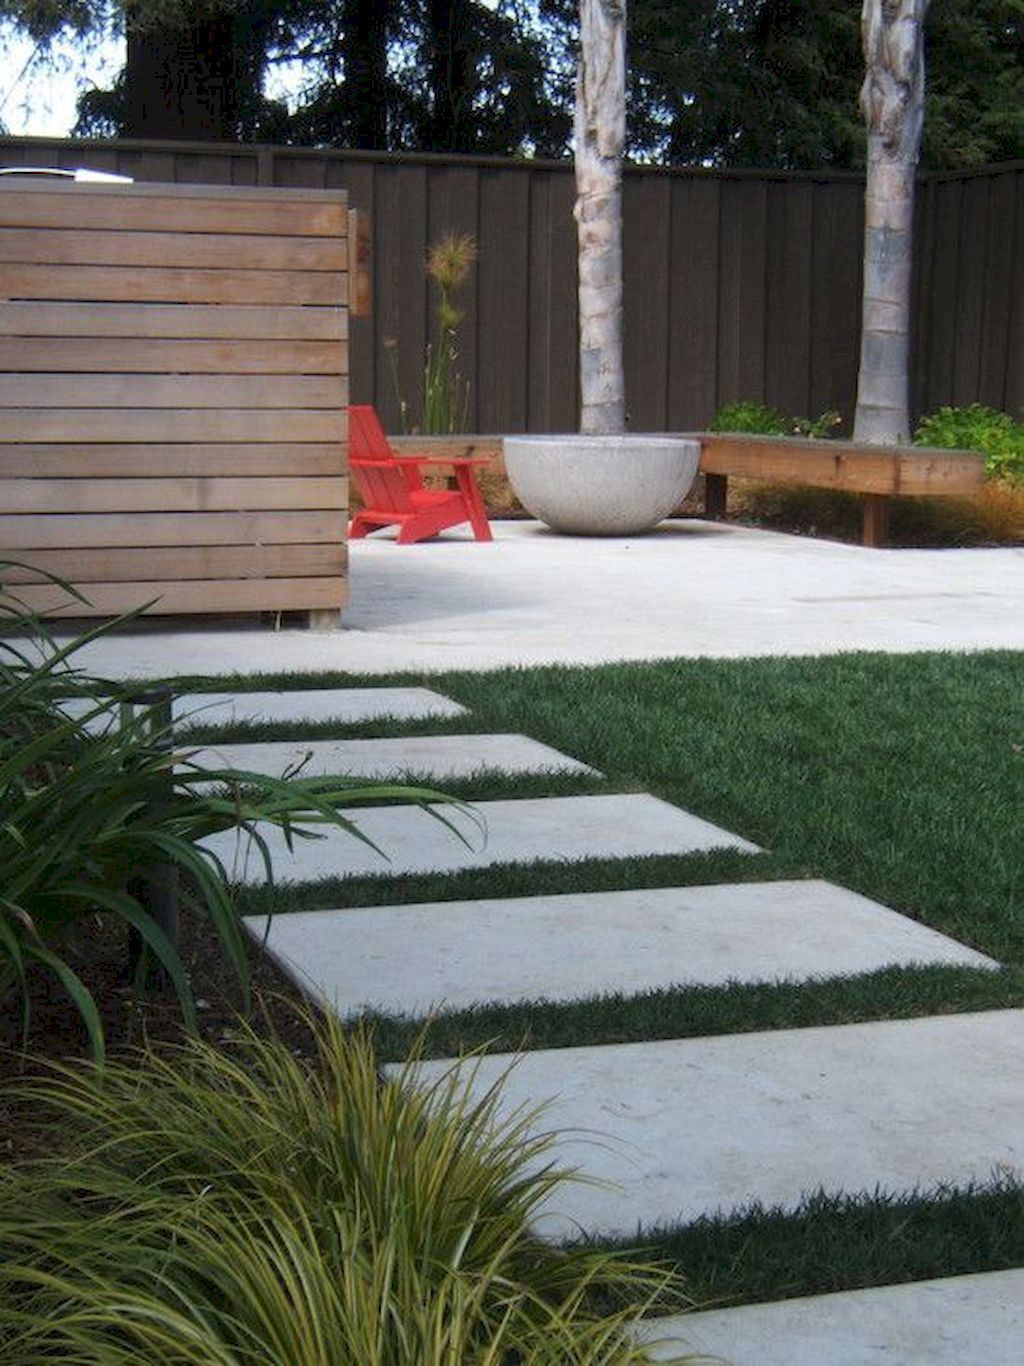 top 100 stepping stones pathway remodel ideas modern on extraordinary garden stone pathway ideas to copy id=32319